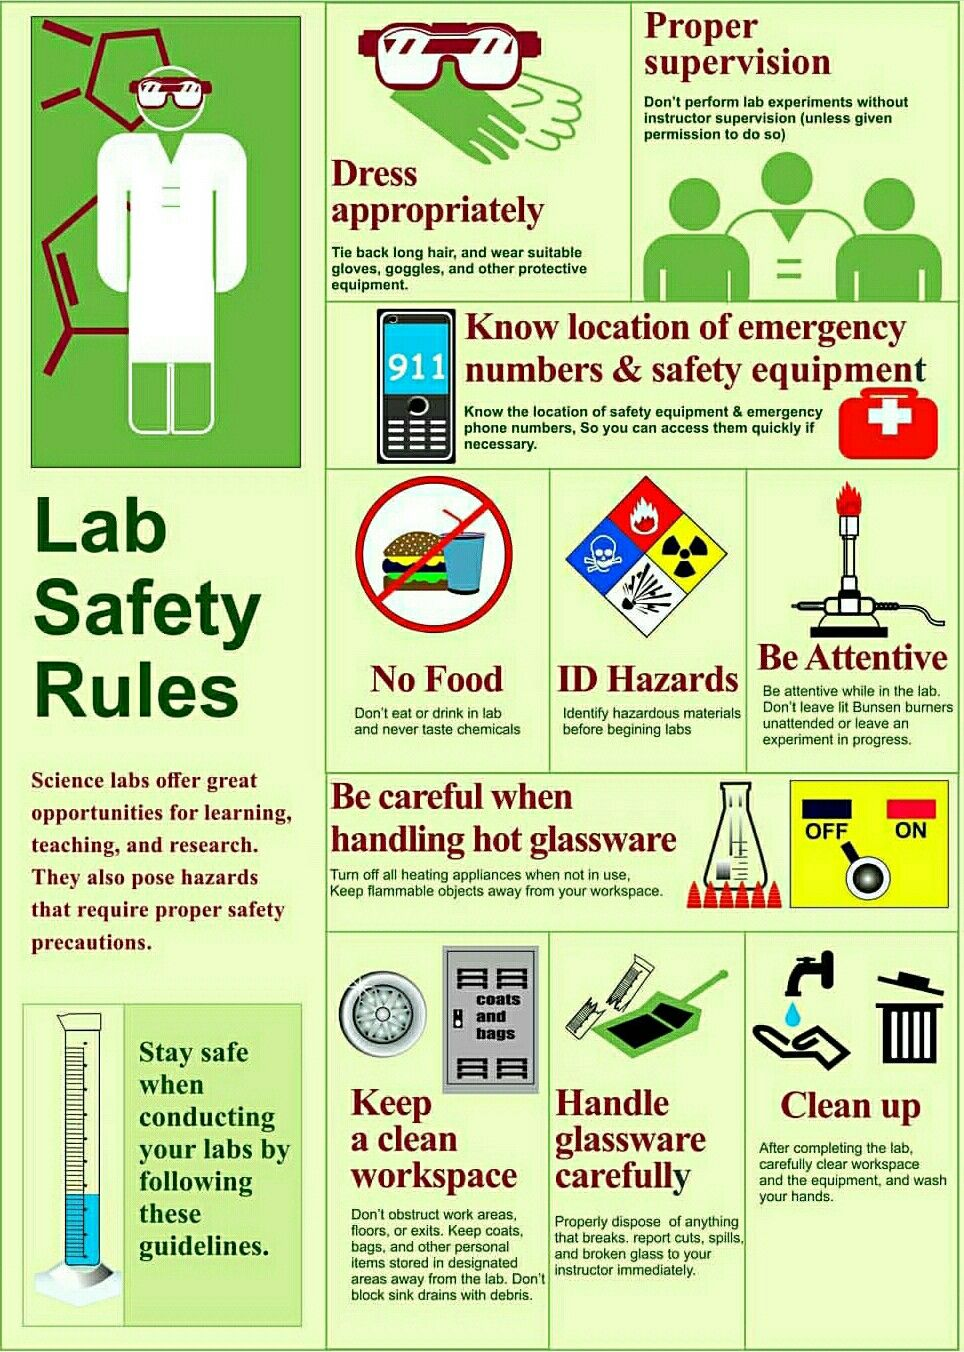 Safety Procedures in the Laboratory Lab safety poster